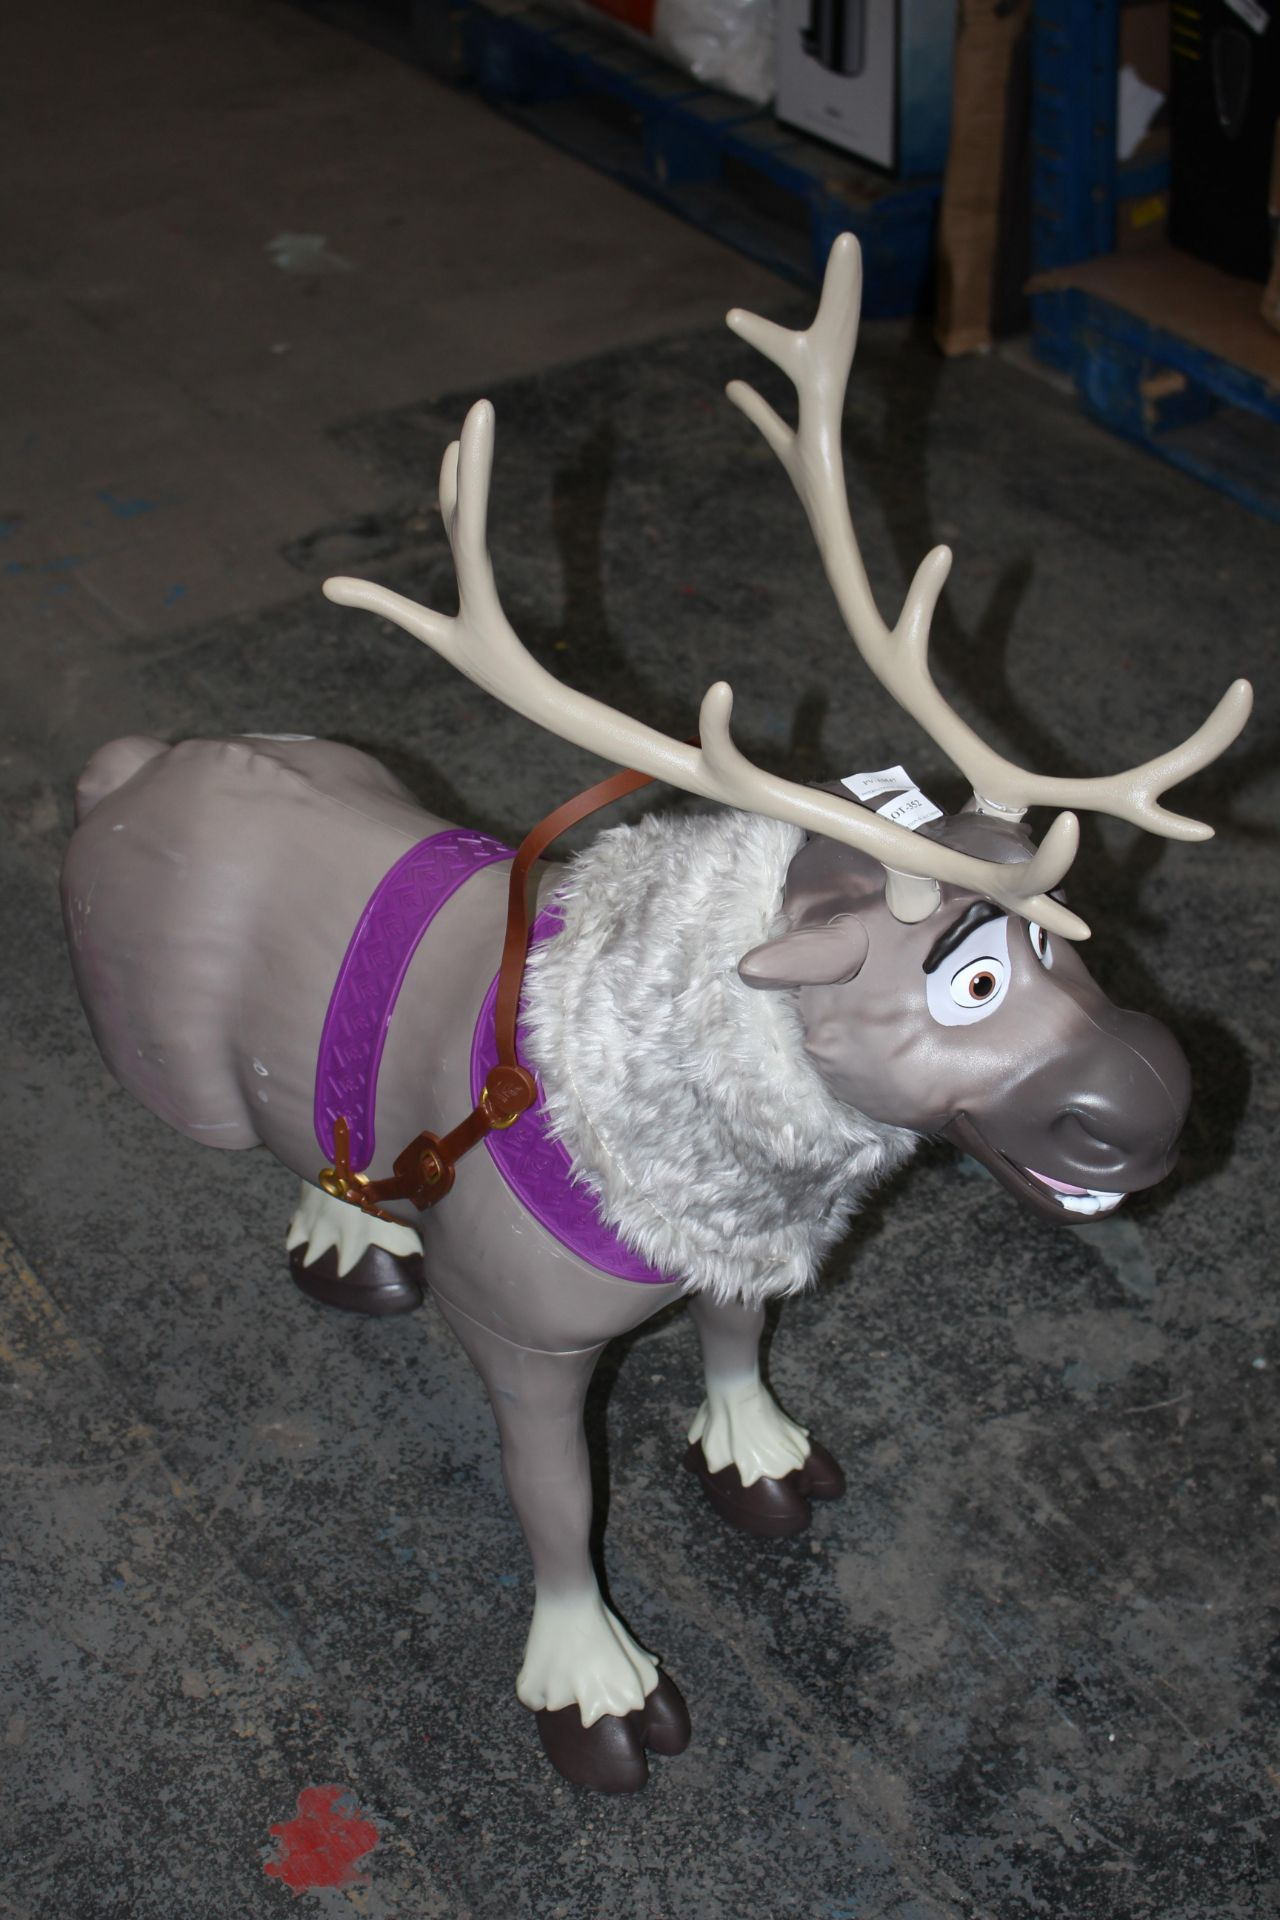 LARGE 3 LEGGED DISNEY REINDEERCondition ReportAppraisal Available on Request- All Items are